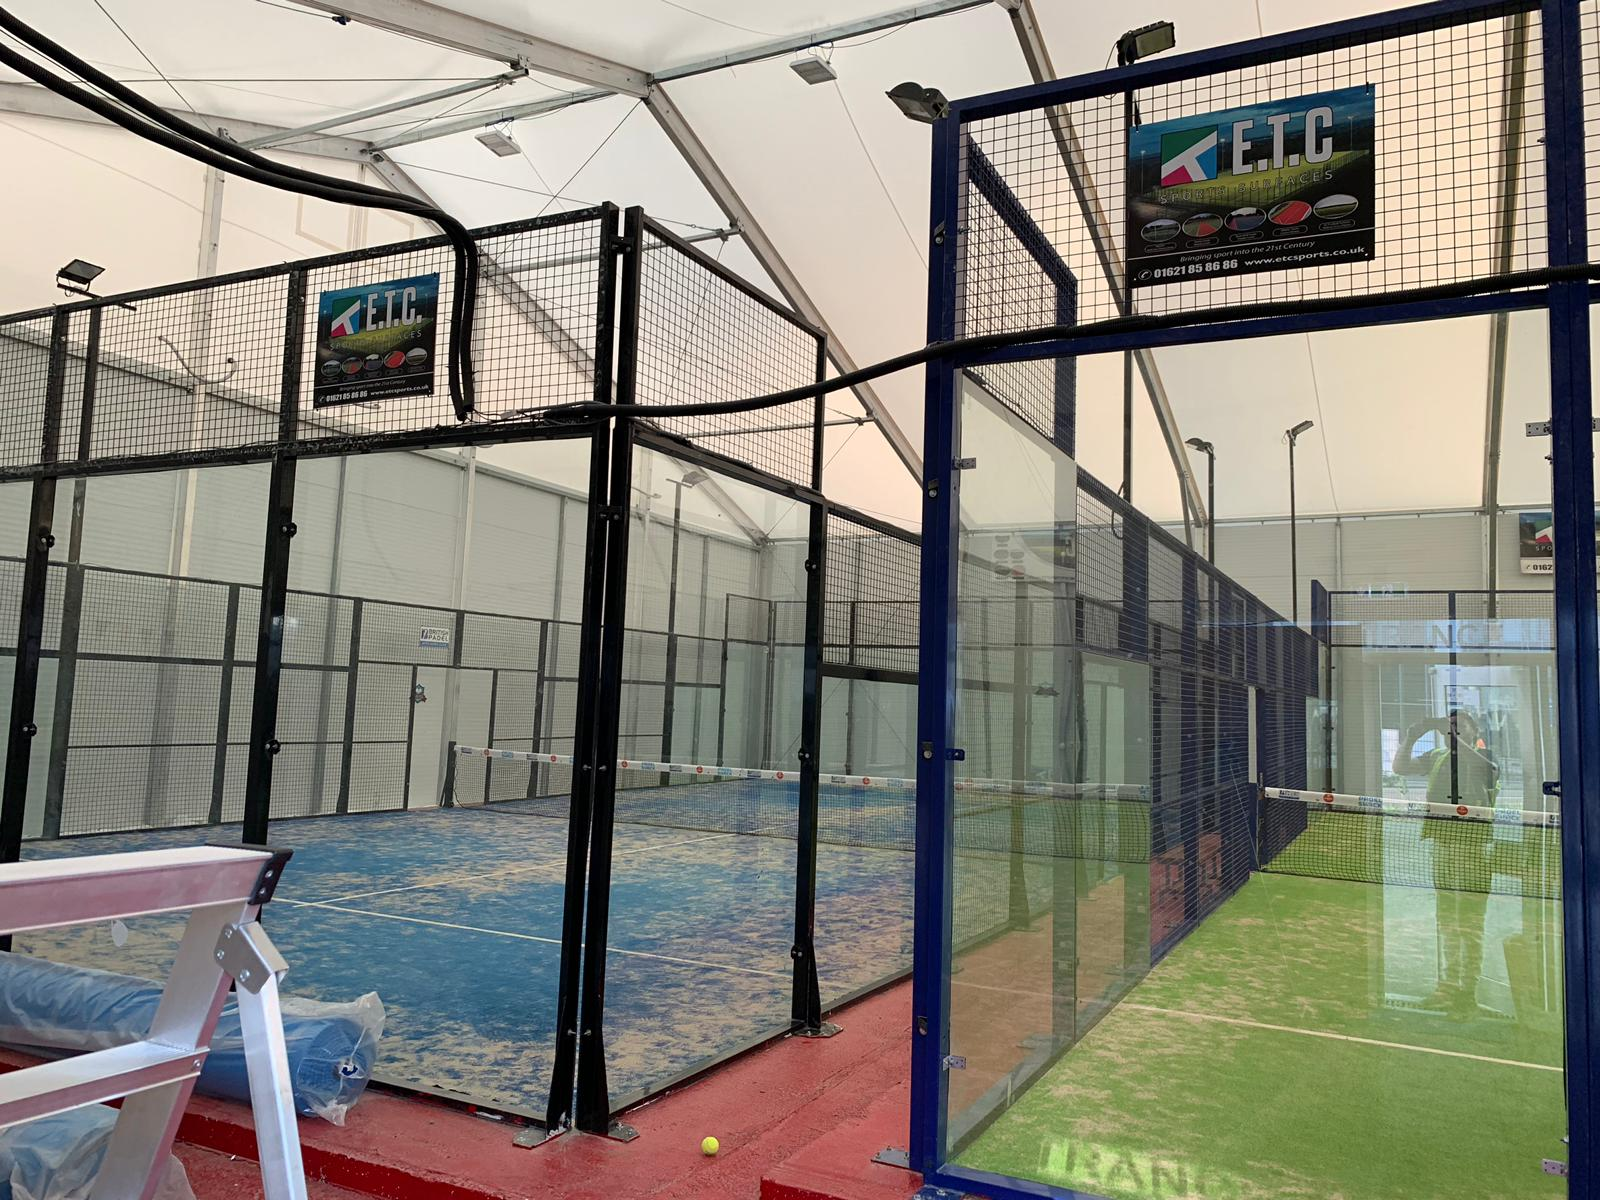 If you're looking for a Padel tennis court construction, ETC Sports Surfaces supplies an adaptable and affordable Padel court system in partnership with Power Padel.